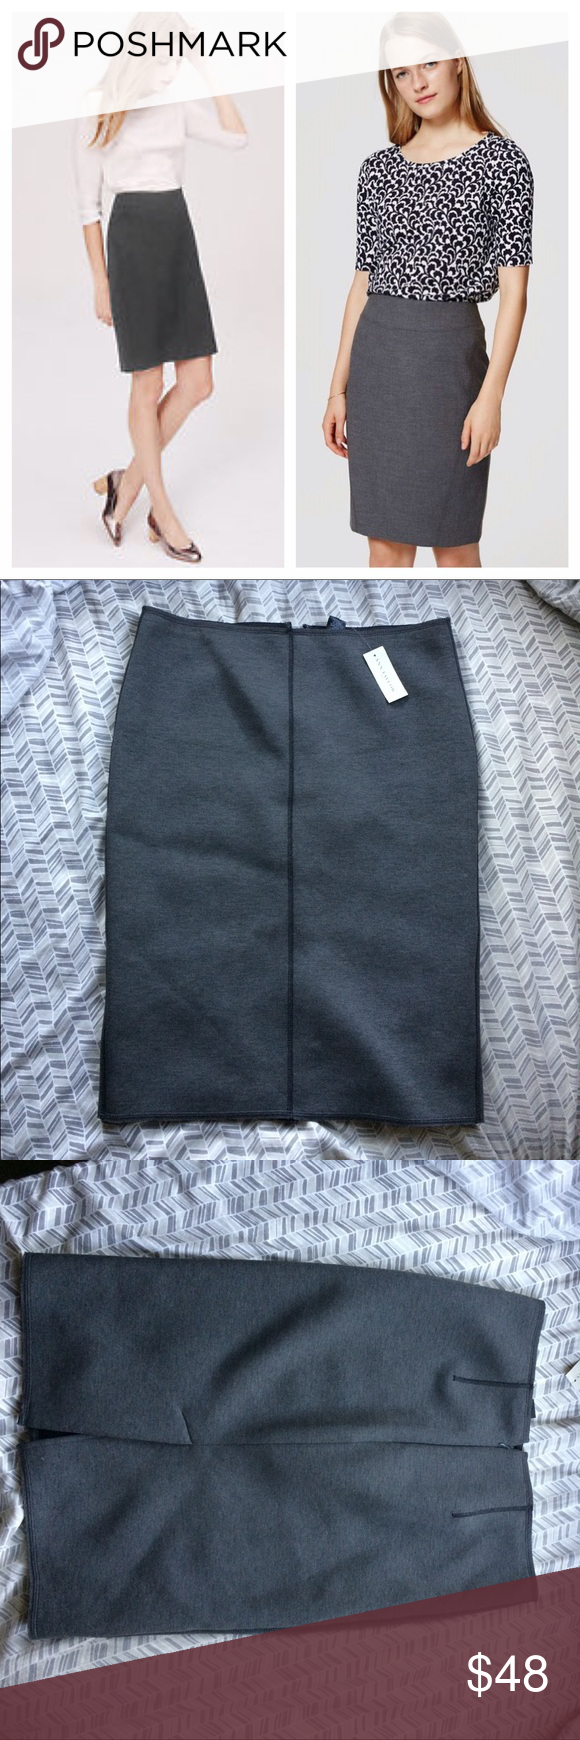 """NEW Ann Taylor scuba pencil skirt Brand new with tags! This is such a cute piece either for work, or even for a night out. Sorry I don't model. The skirt is very slightly different from the stock photo since I couldn't find an exact stock photo. Dark gray stretchy scuba material pencil skirt. Back kick pleat. Modern edgy exposed seam detailing. Polyester, rayon and spandex. Waist is stretchy. Length 24"""" waist flat across 17"""" hips flat across 20"""" bust stretches to fit the body when worn. Ann…"""